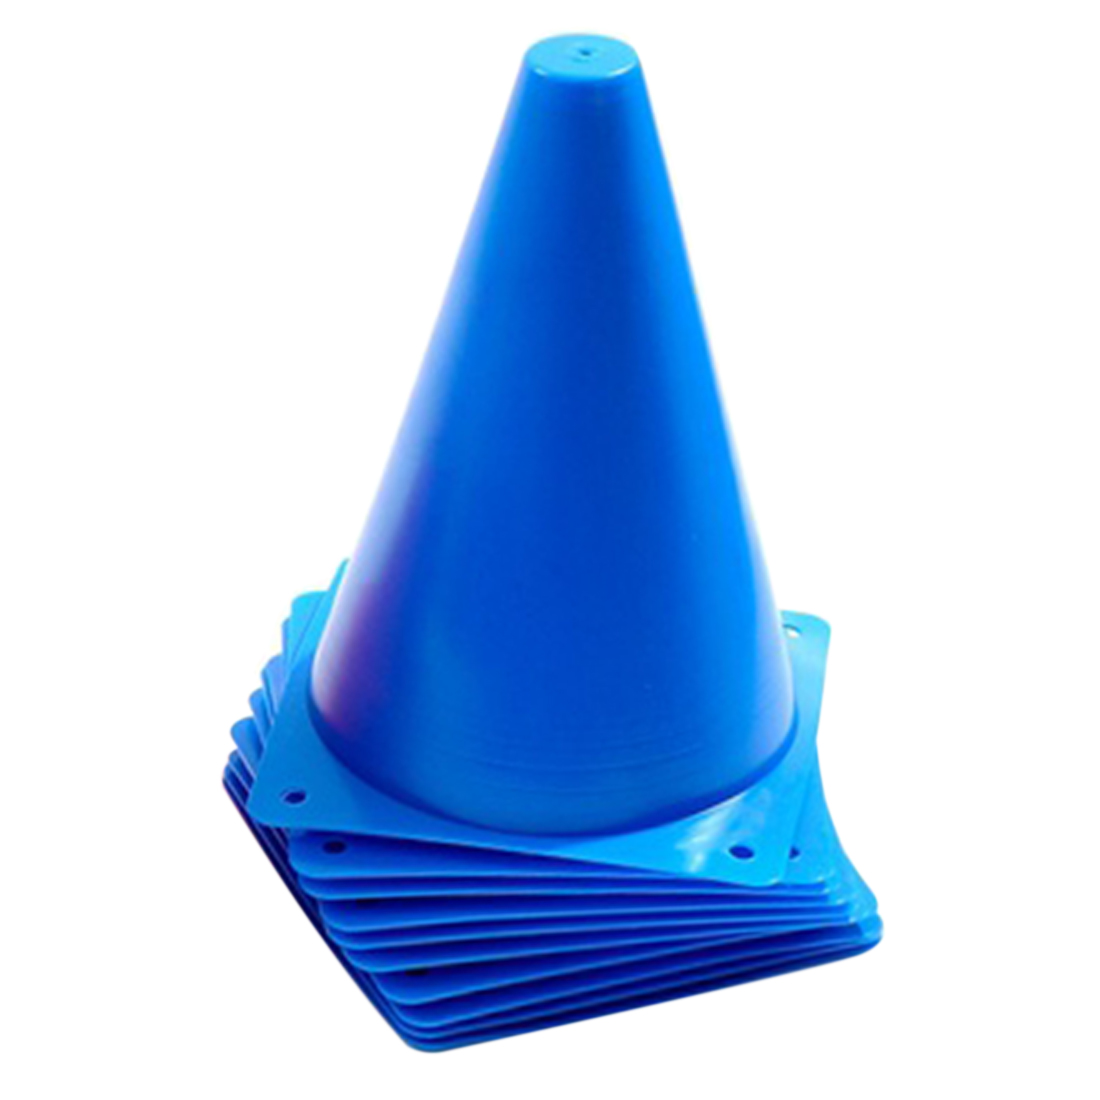 High Quality Football and Rugby Marker Cones - pack of 50 brightly coloured marker disc cones plus stand, great field and pitch markers for football, soccer, rugby, basketball training, zone markers for training, practice and agility drills.